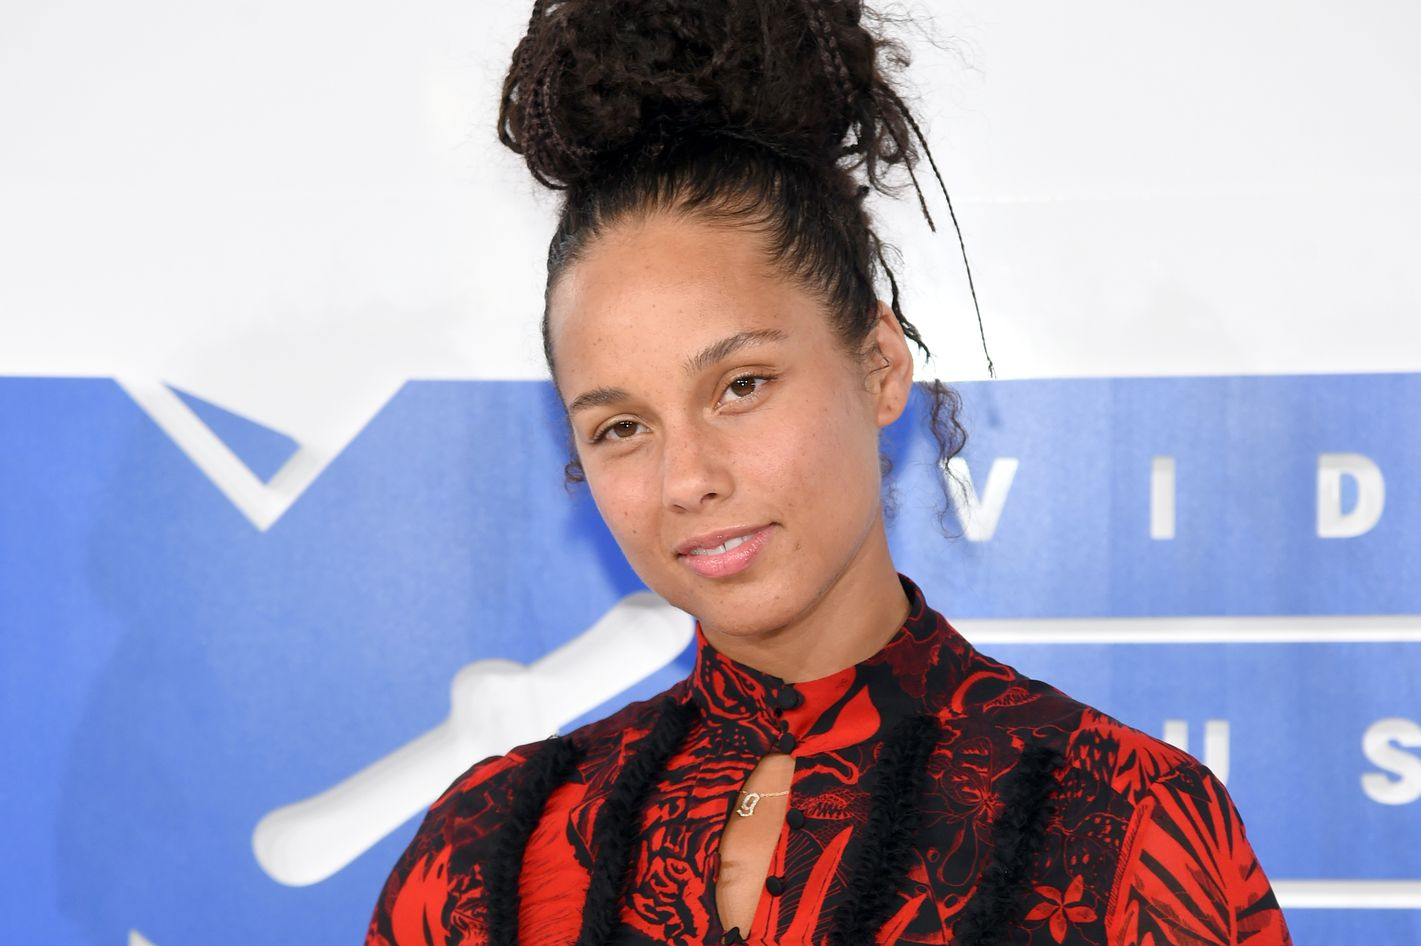 The Real Alicia Keys, ... Alicia Keys